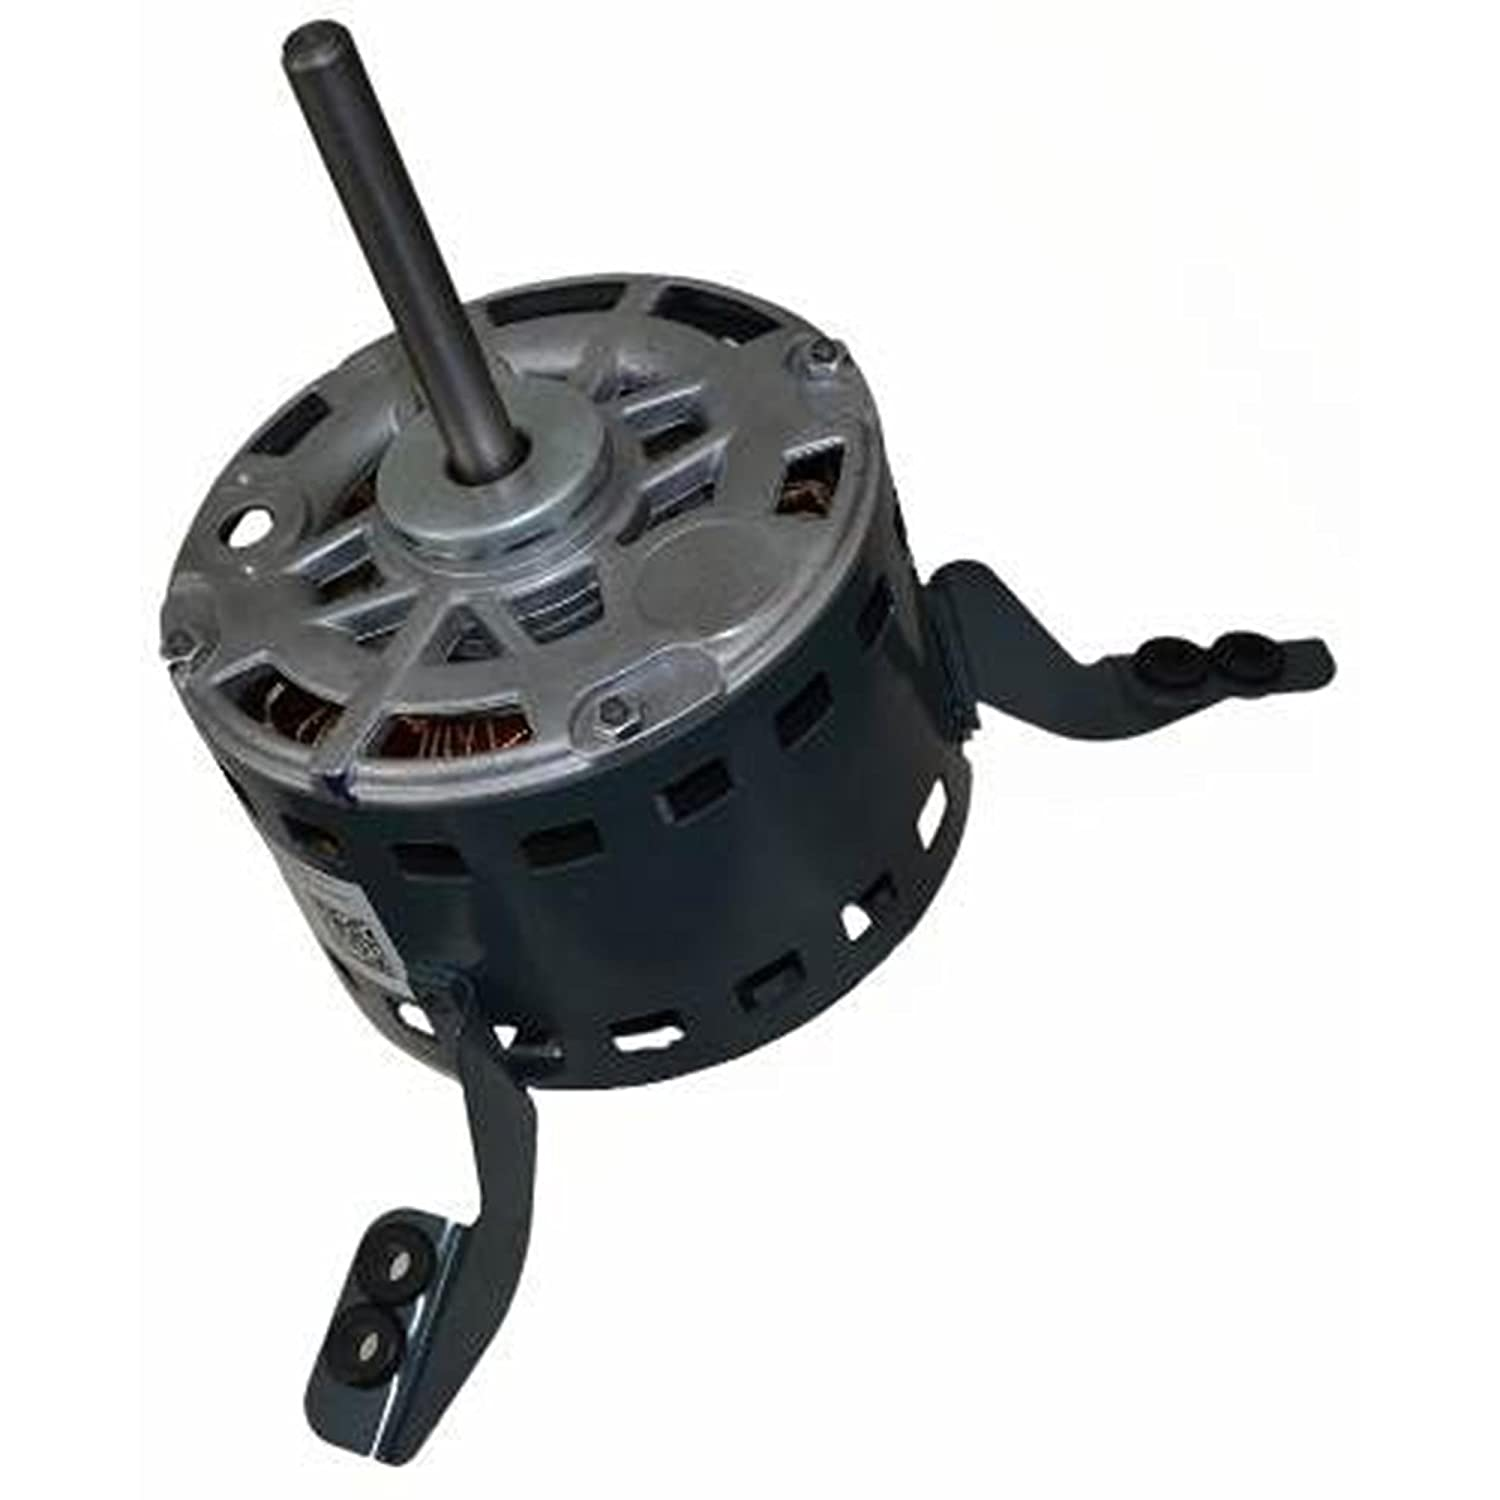 B1340021S - New products world's highest quality popular Goodman OEM Replacement Furnace Blower HP 3 Motor Popular popular 1